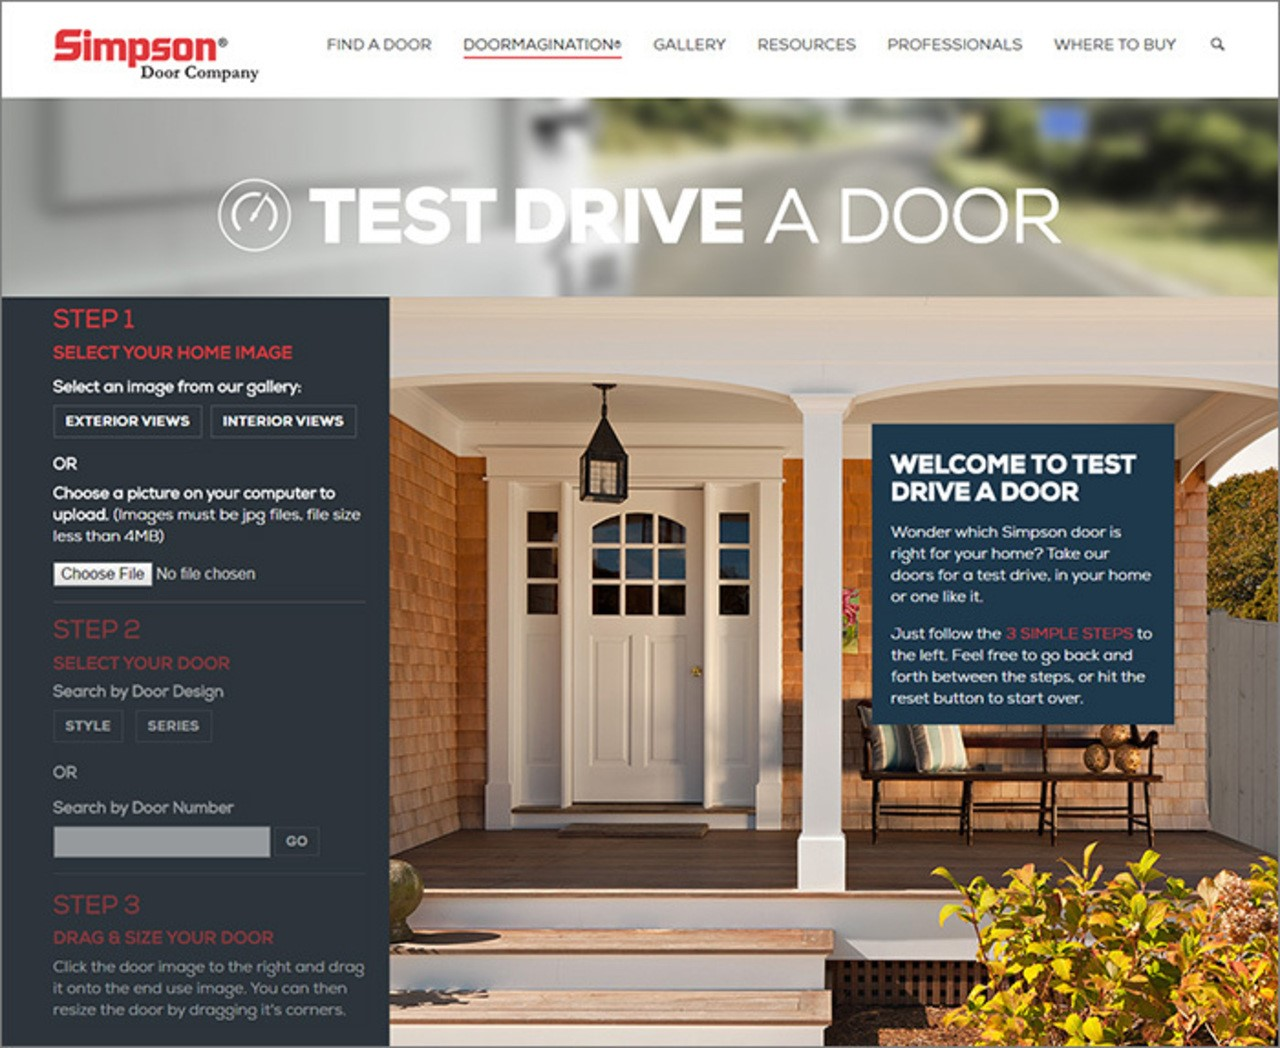 1048 #A26E29 Take A Simpson Door For A Test Drive Sweepstakes Open May 2 31  pic Simpson Doors Online 43711280